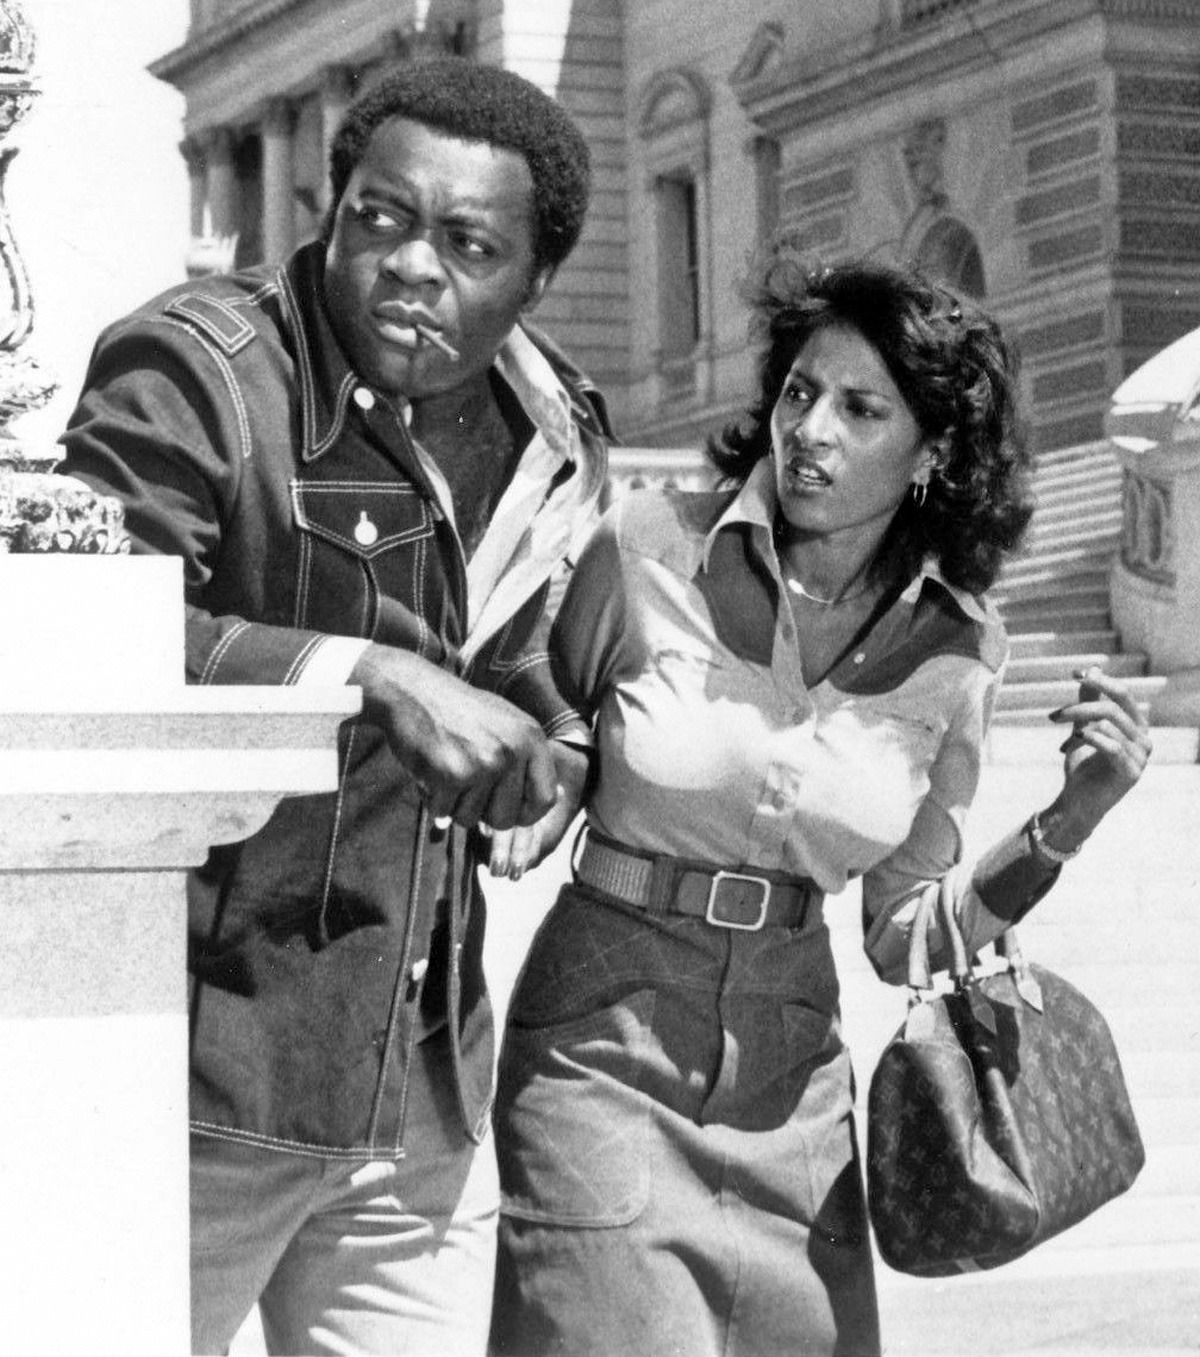 Pam Grier with Yaphet Kotto - Friday Foster (1975